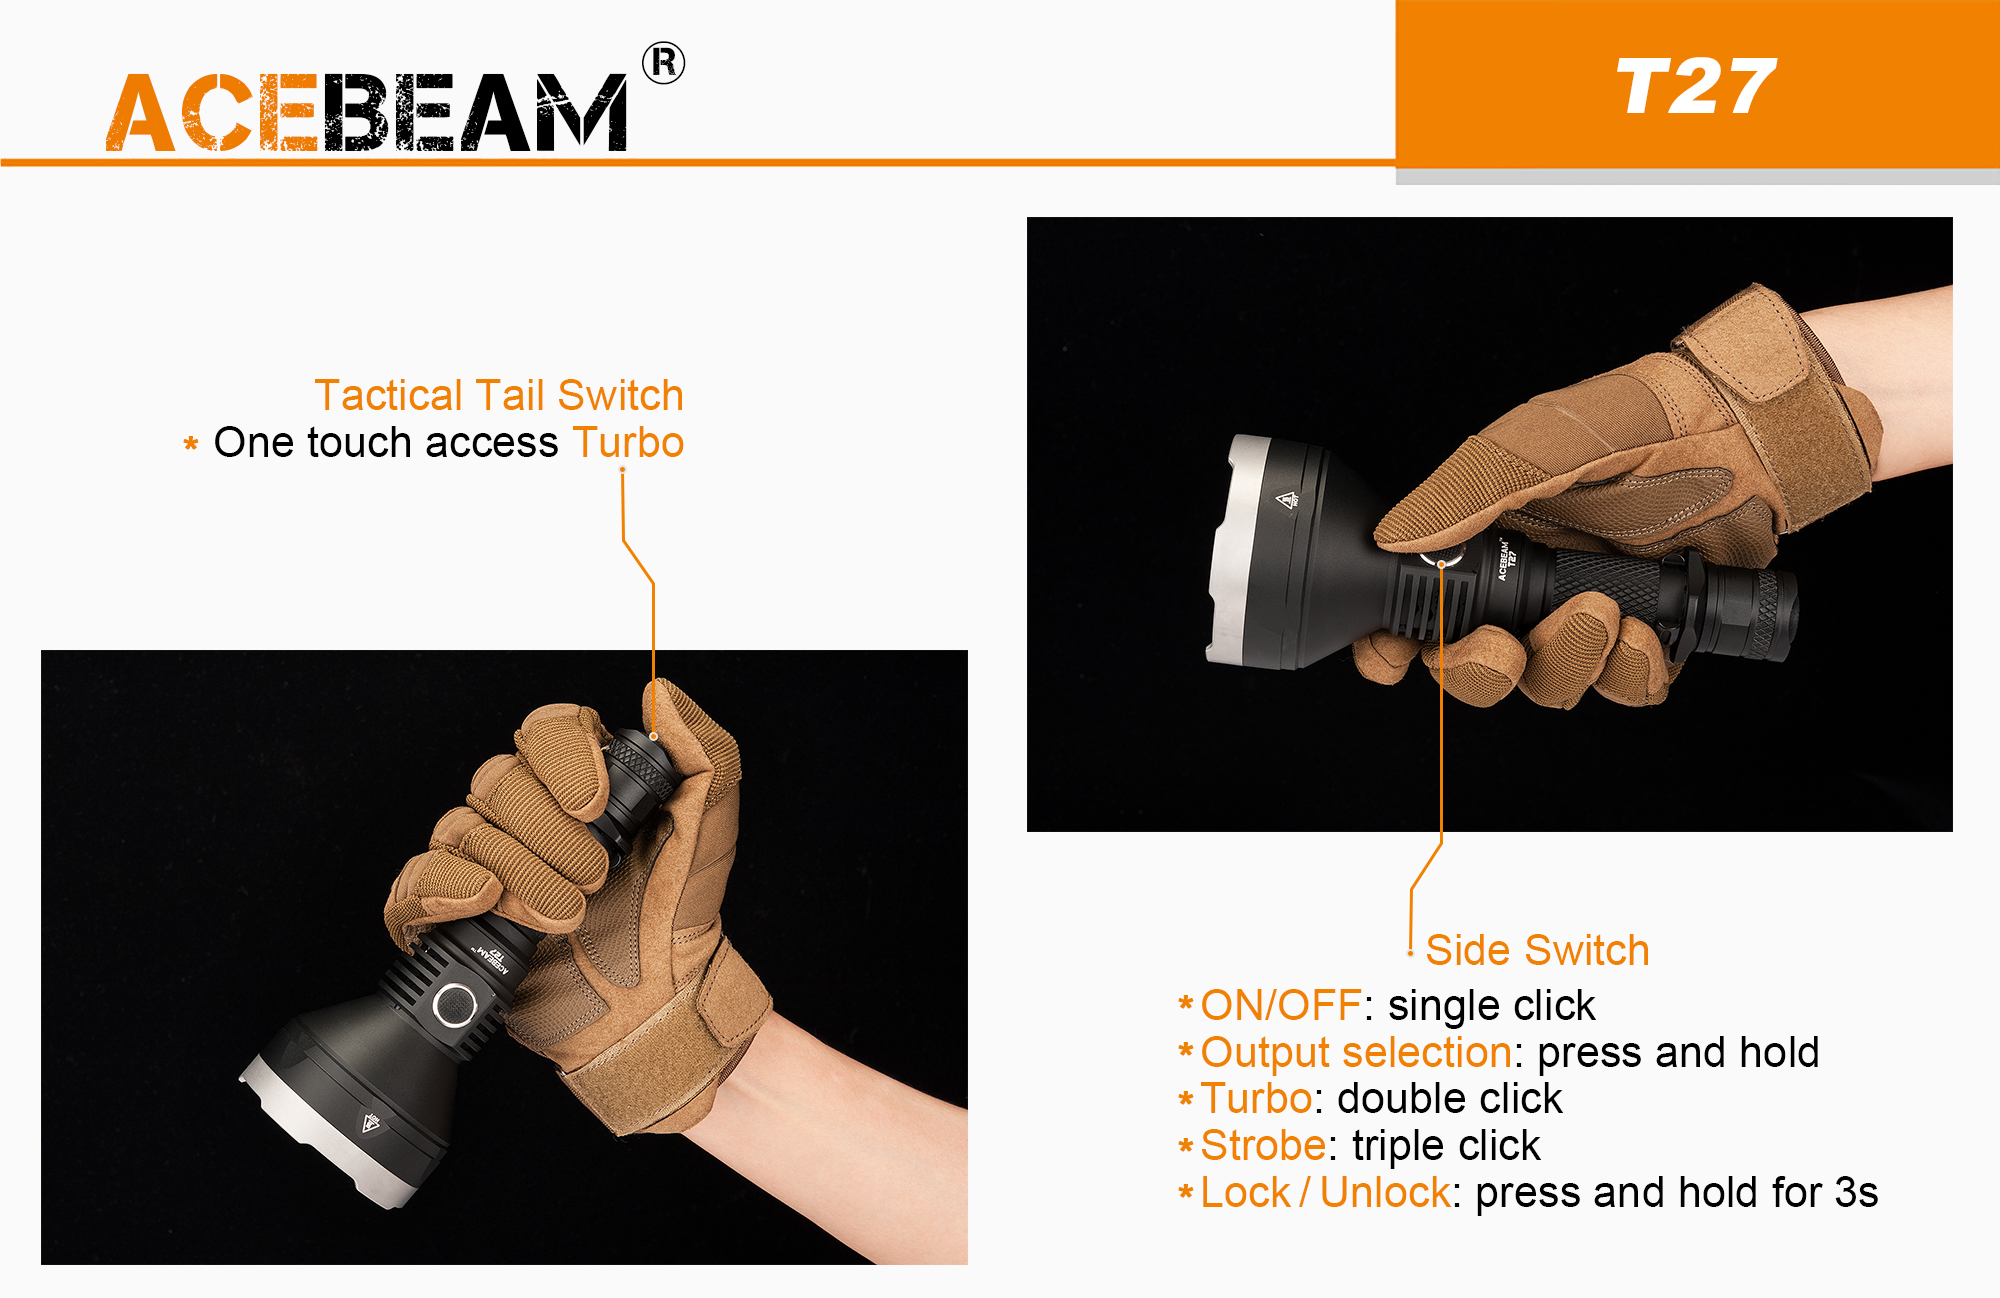 ACEBEAM LED RECARGABLE USB